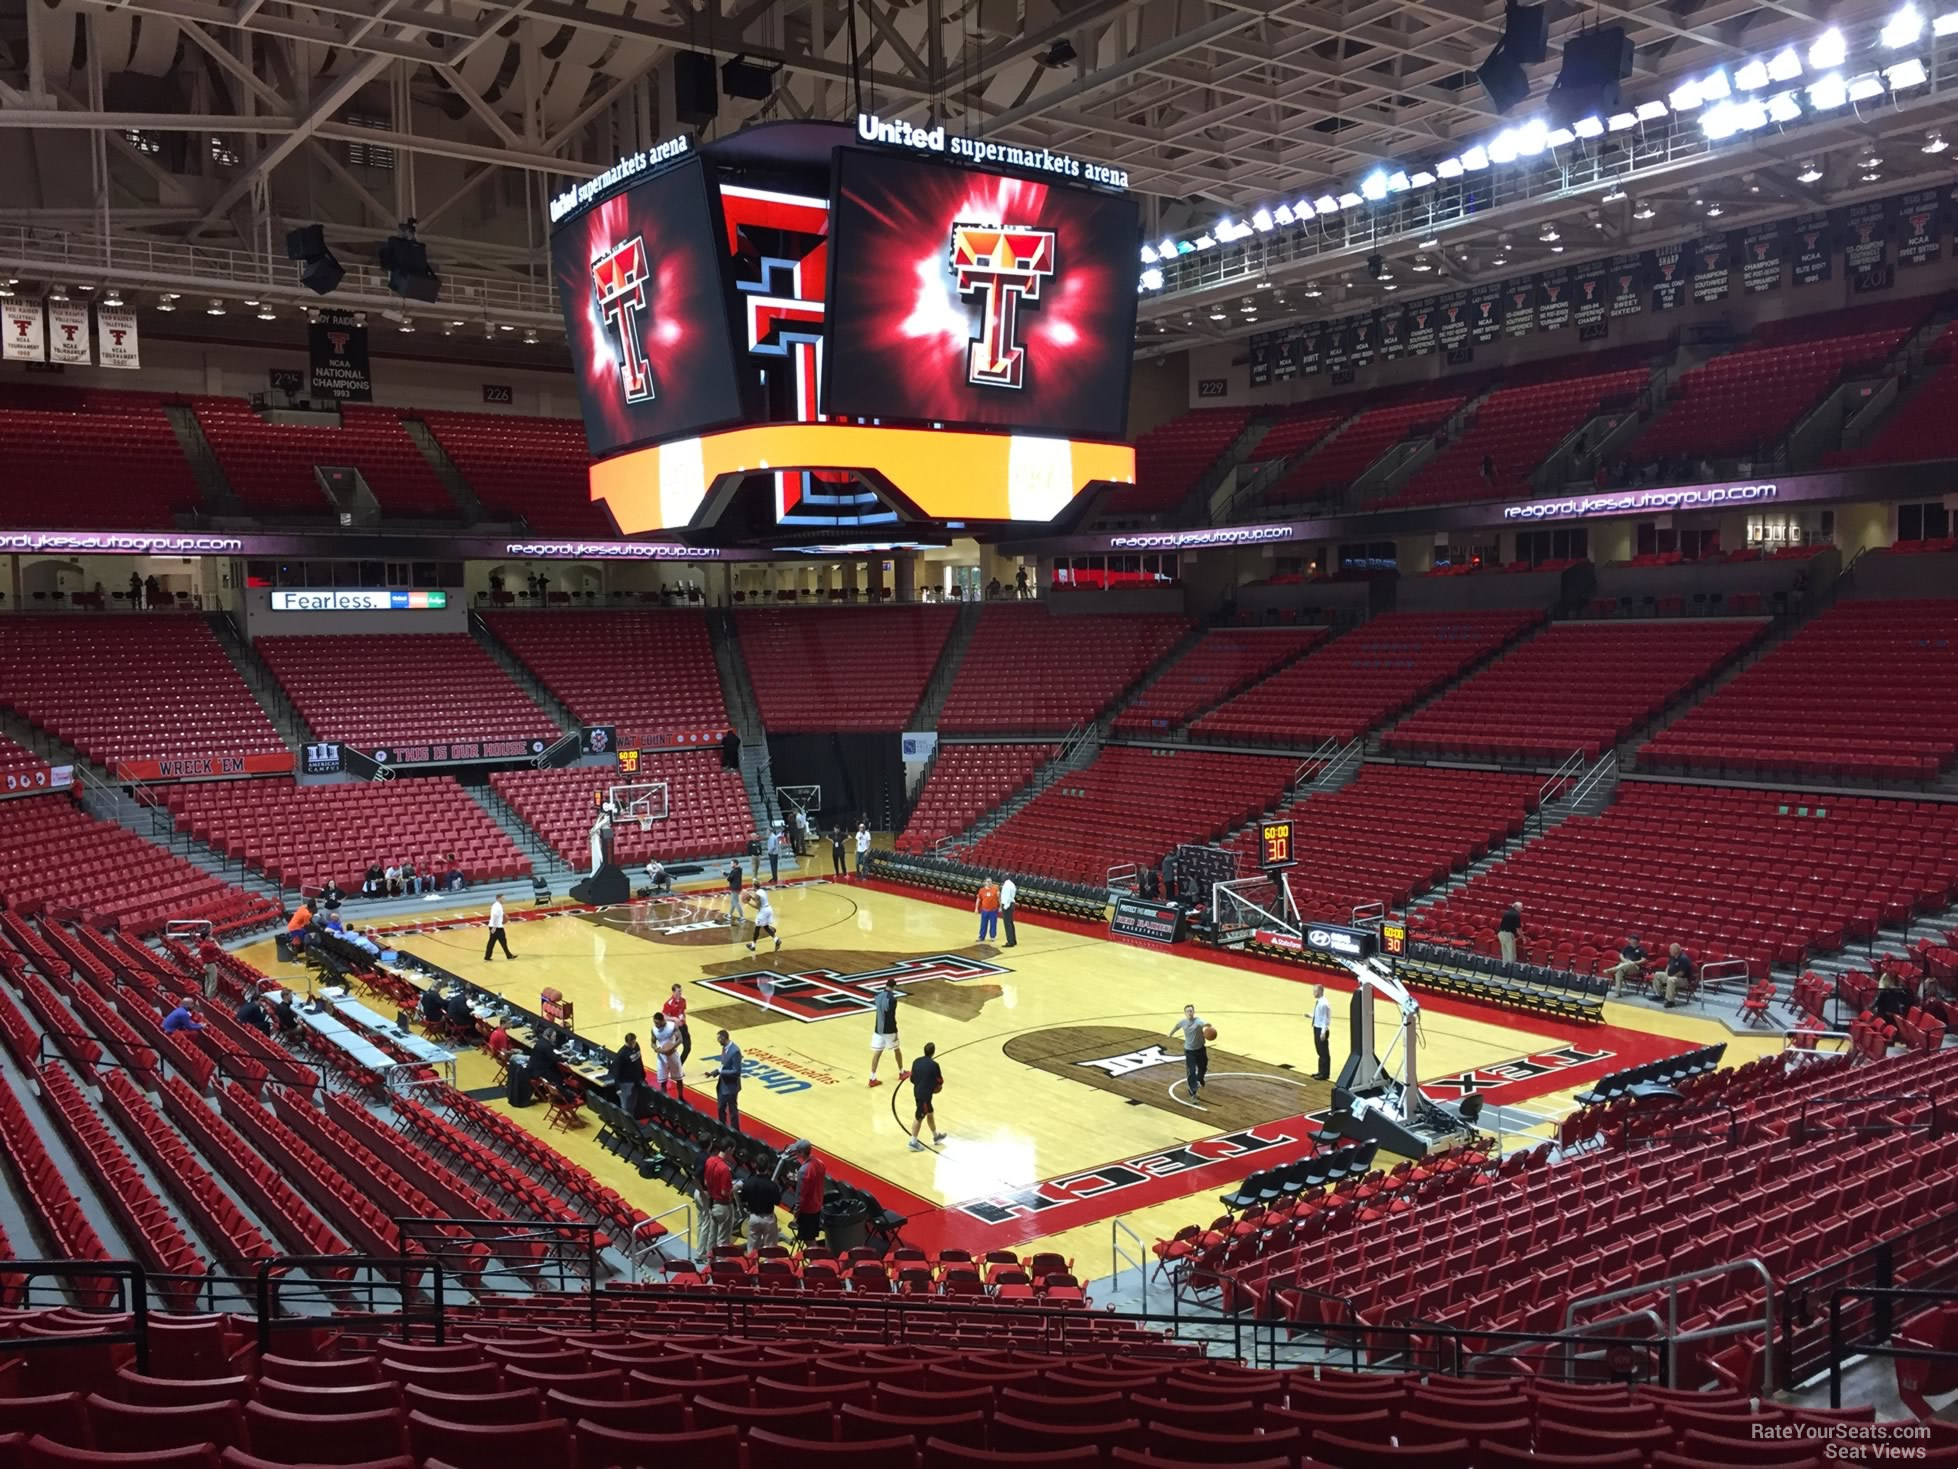 United Supermarkets Arena Section 109 Rateyourseats Com